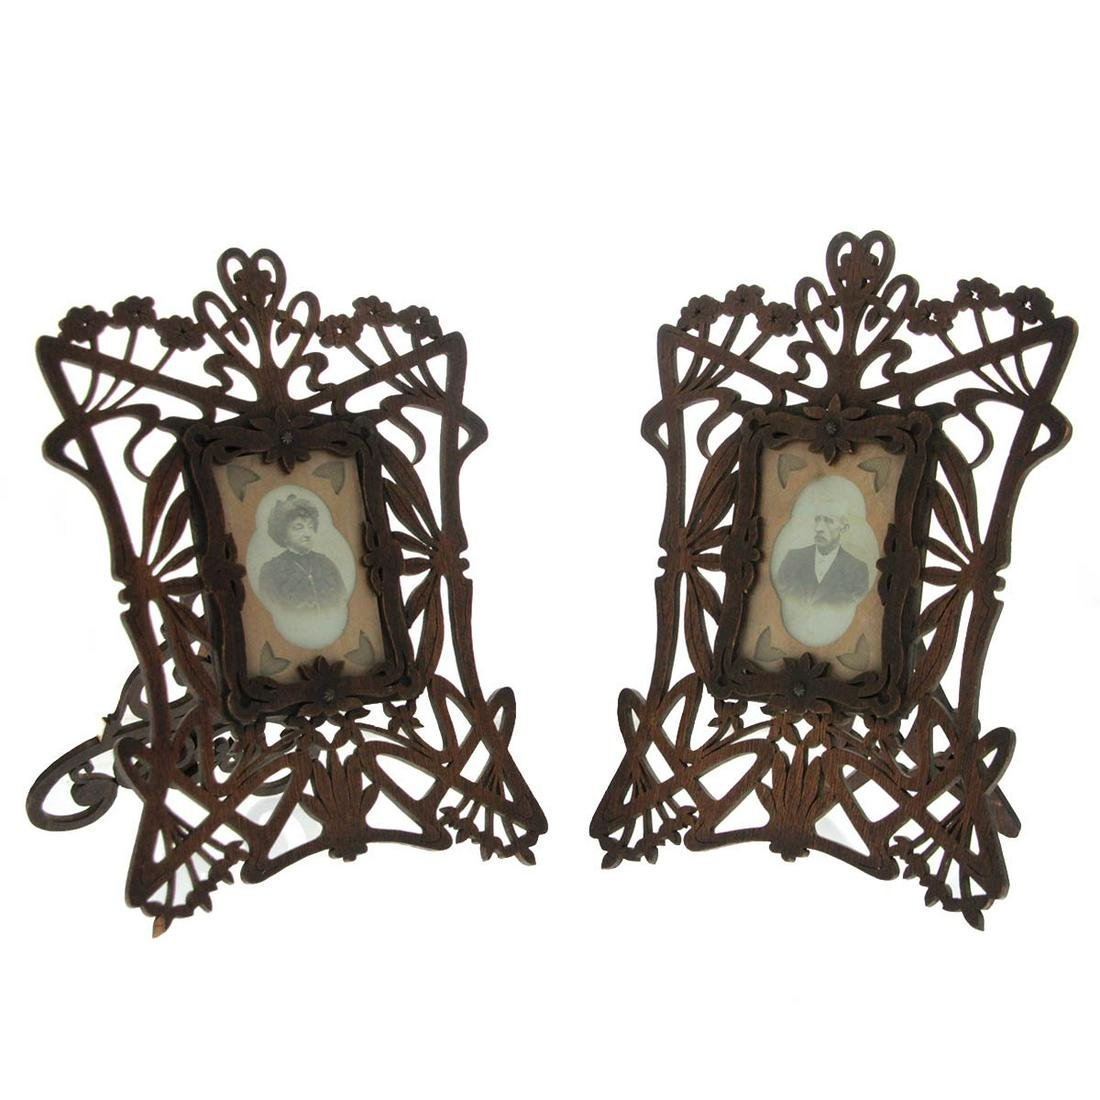 Pair of Art Nouveau Carved Wood Picture Photo Frames,